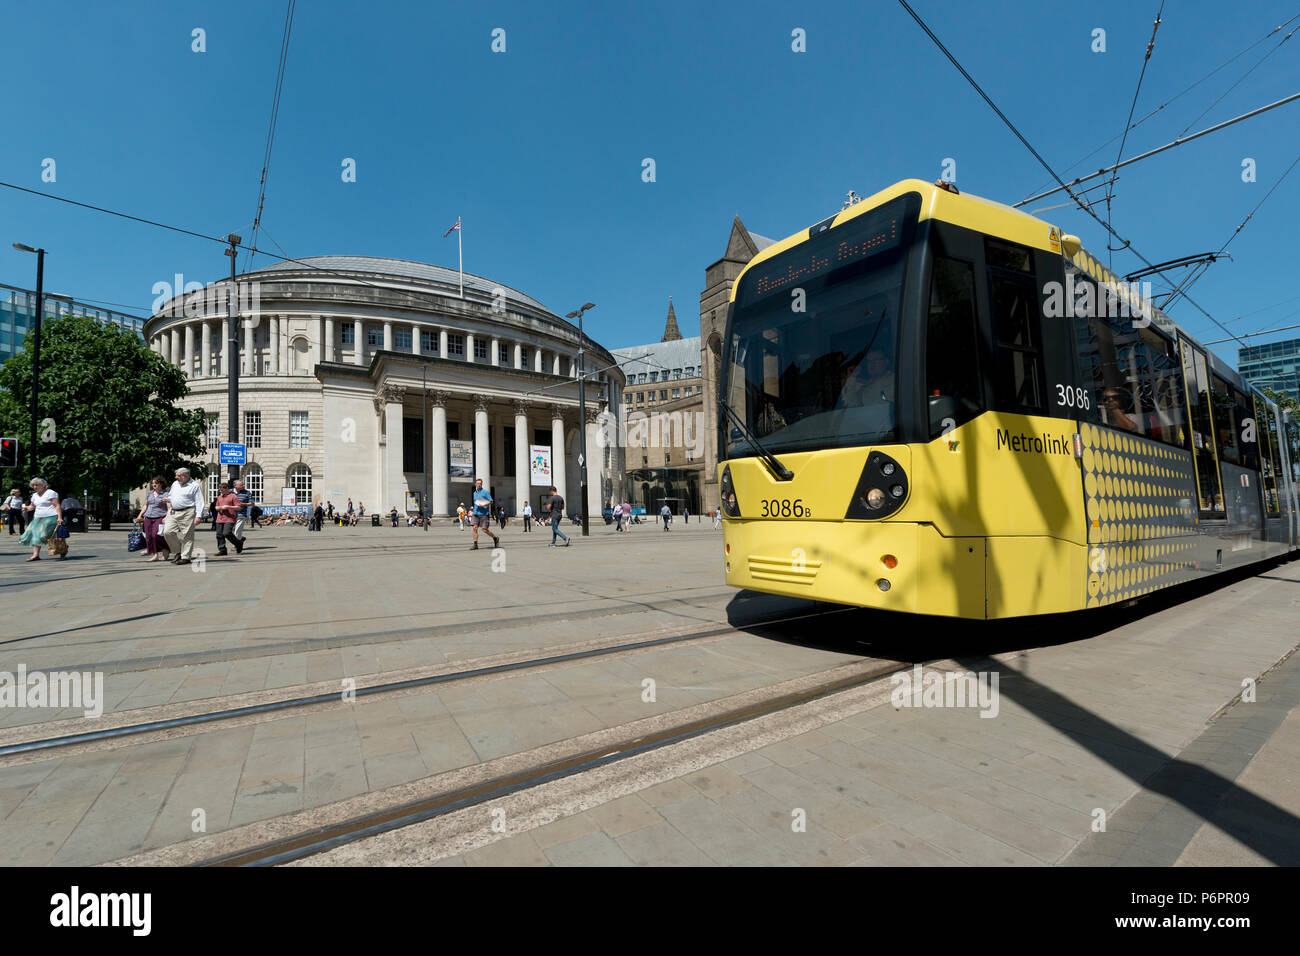 A Metrolink tram passes infront of the Central Library in St Peter's Sqaure in Manchester. - Stock Image